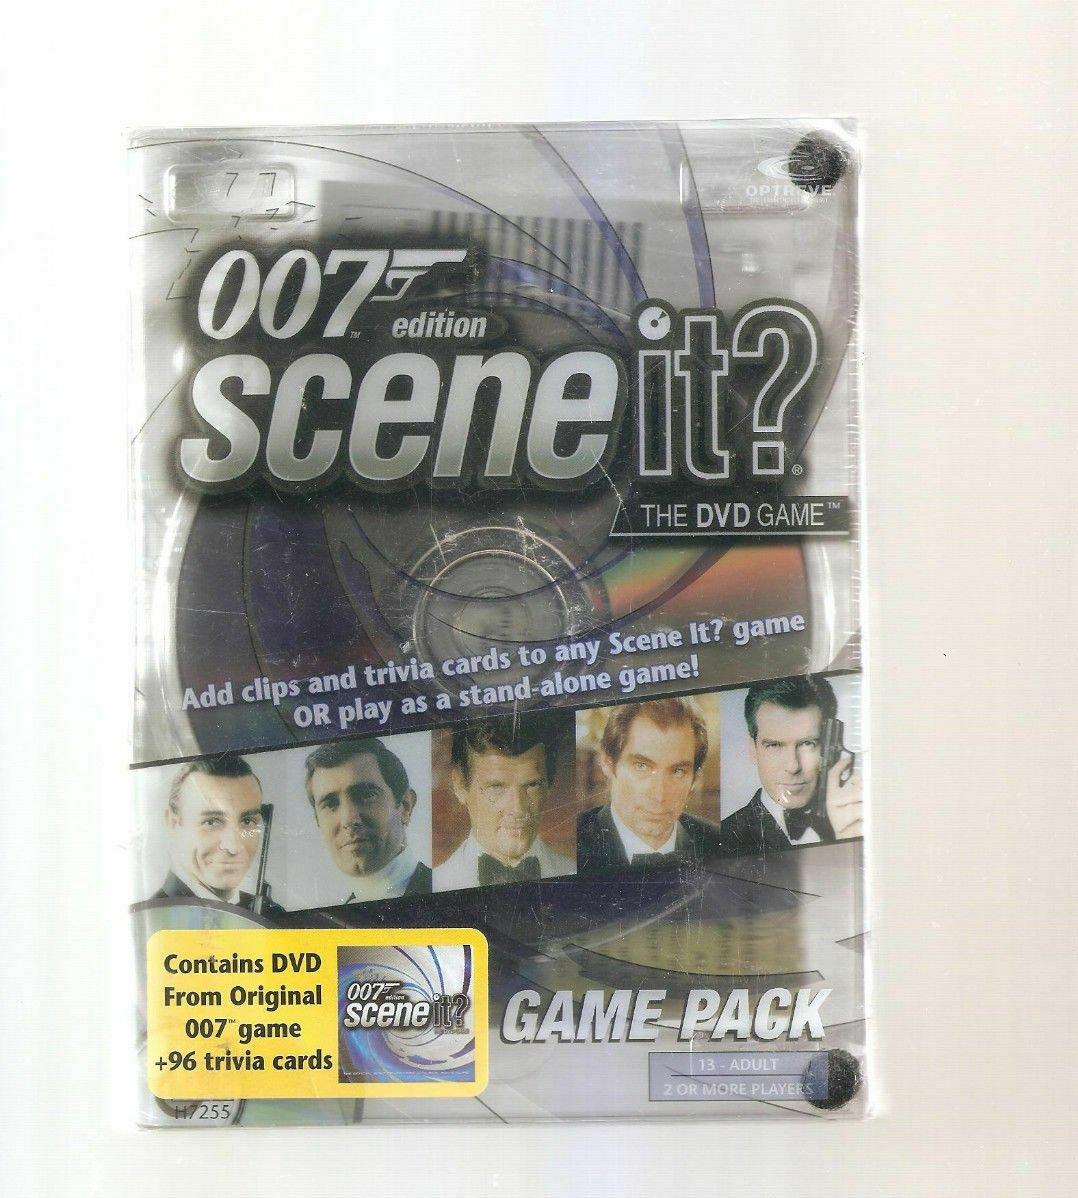 Mattel 007 Edition, Scene It? Game Pack Age 13 to Adult